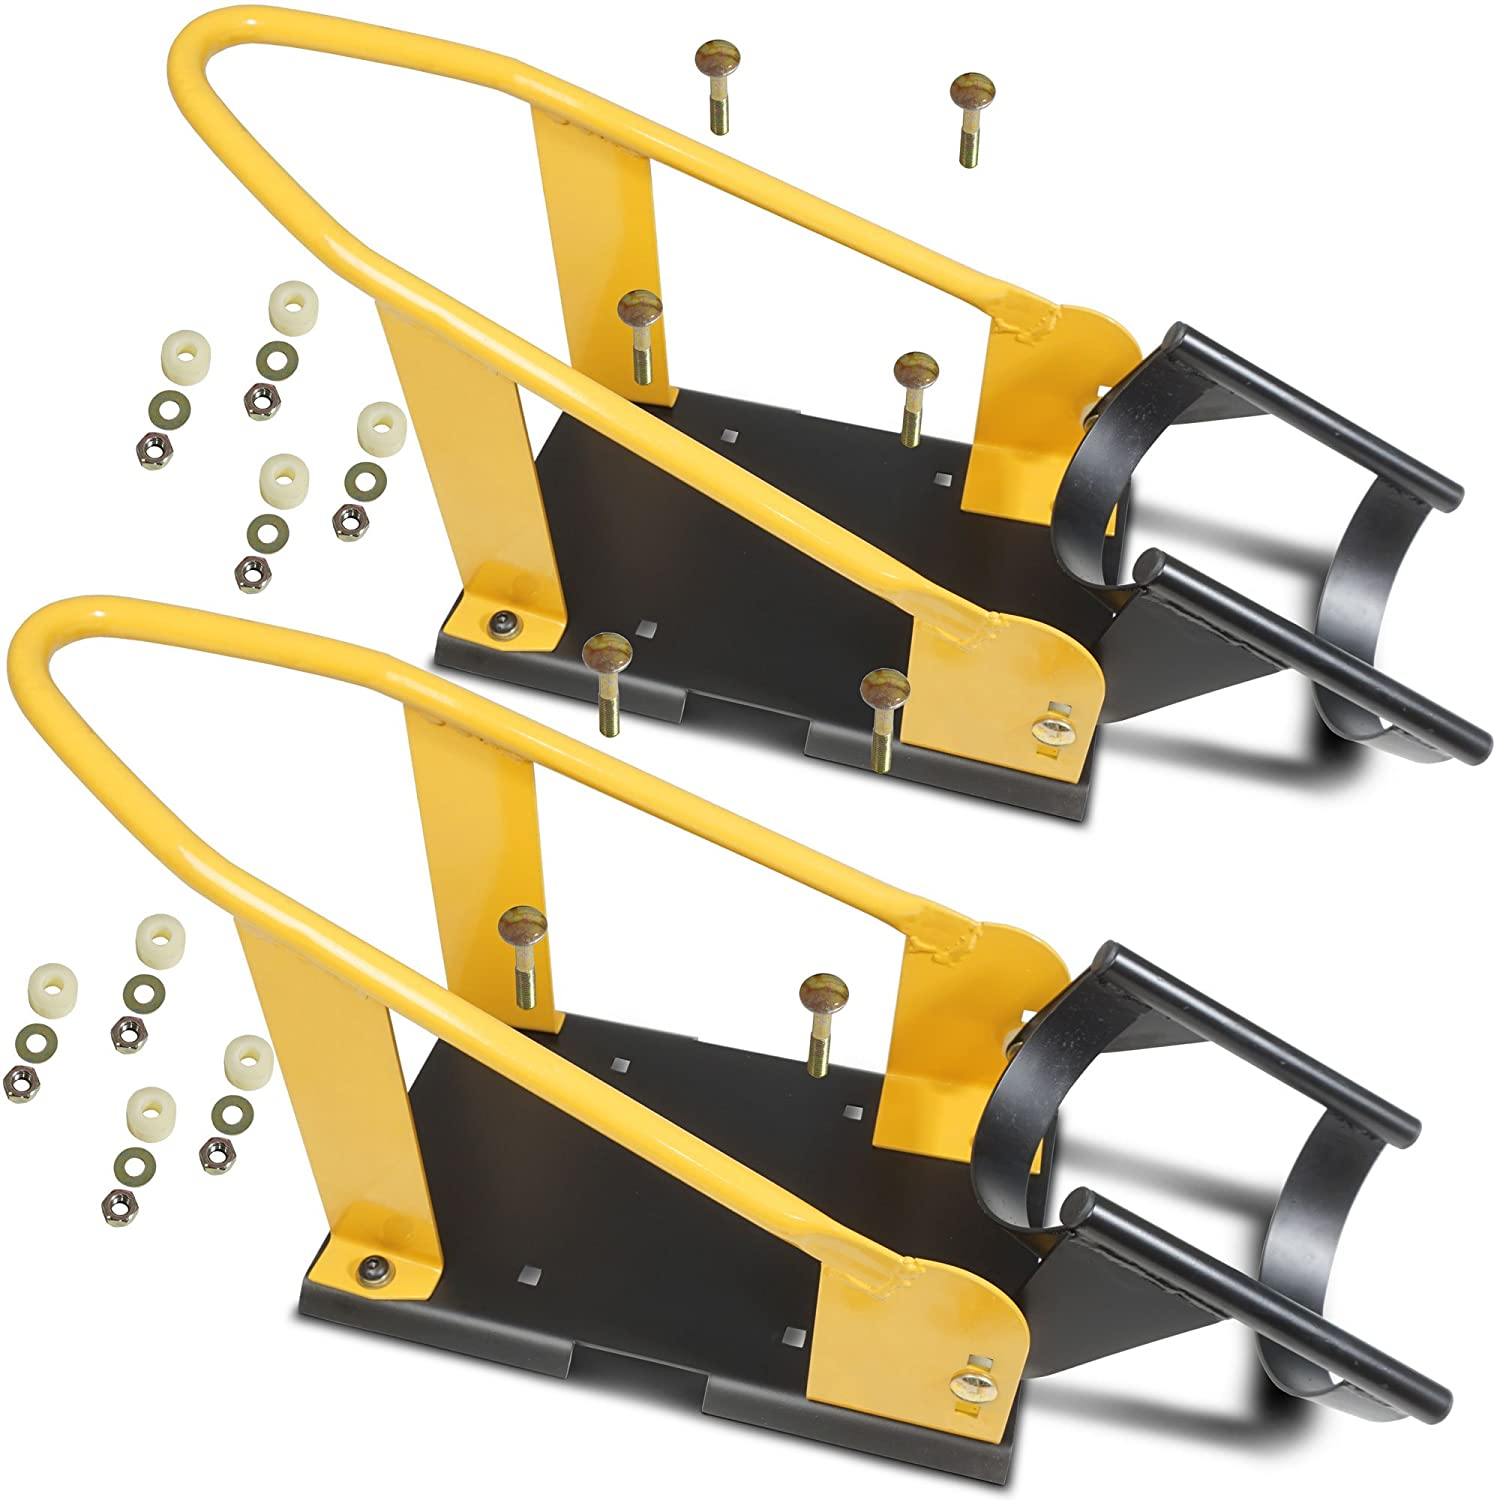 Pair - Titan Adjustable Motorcycle Wheel Chocks 17'-21' Tires Bike Trailer Mount Titan Ramps